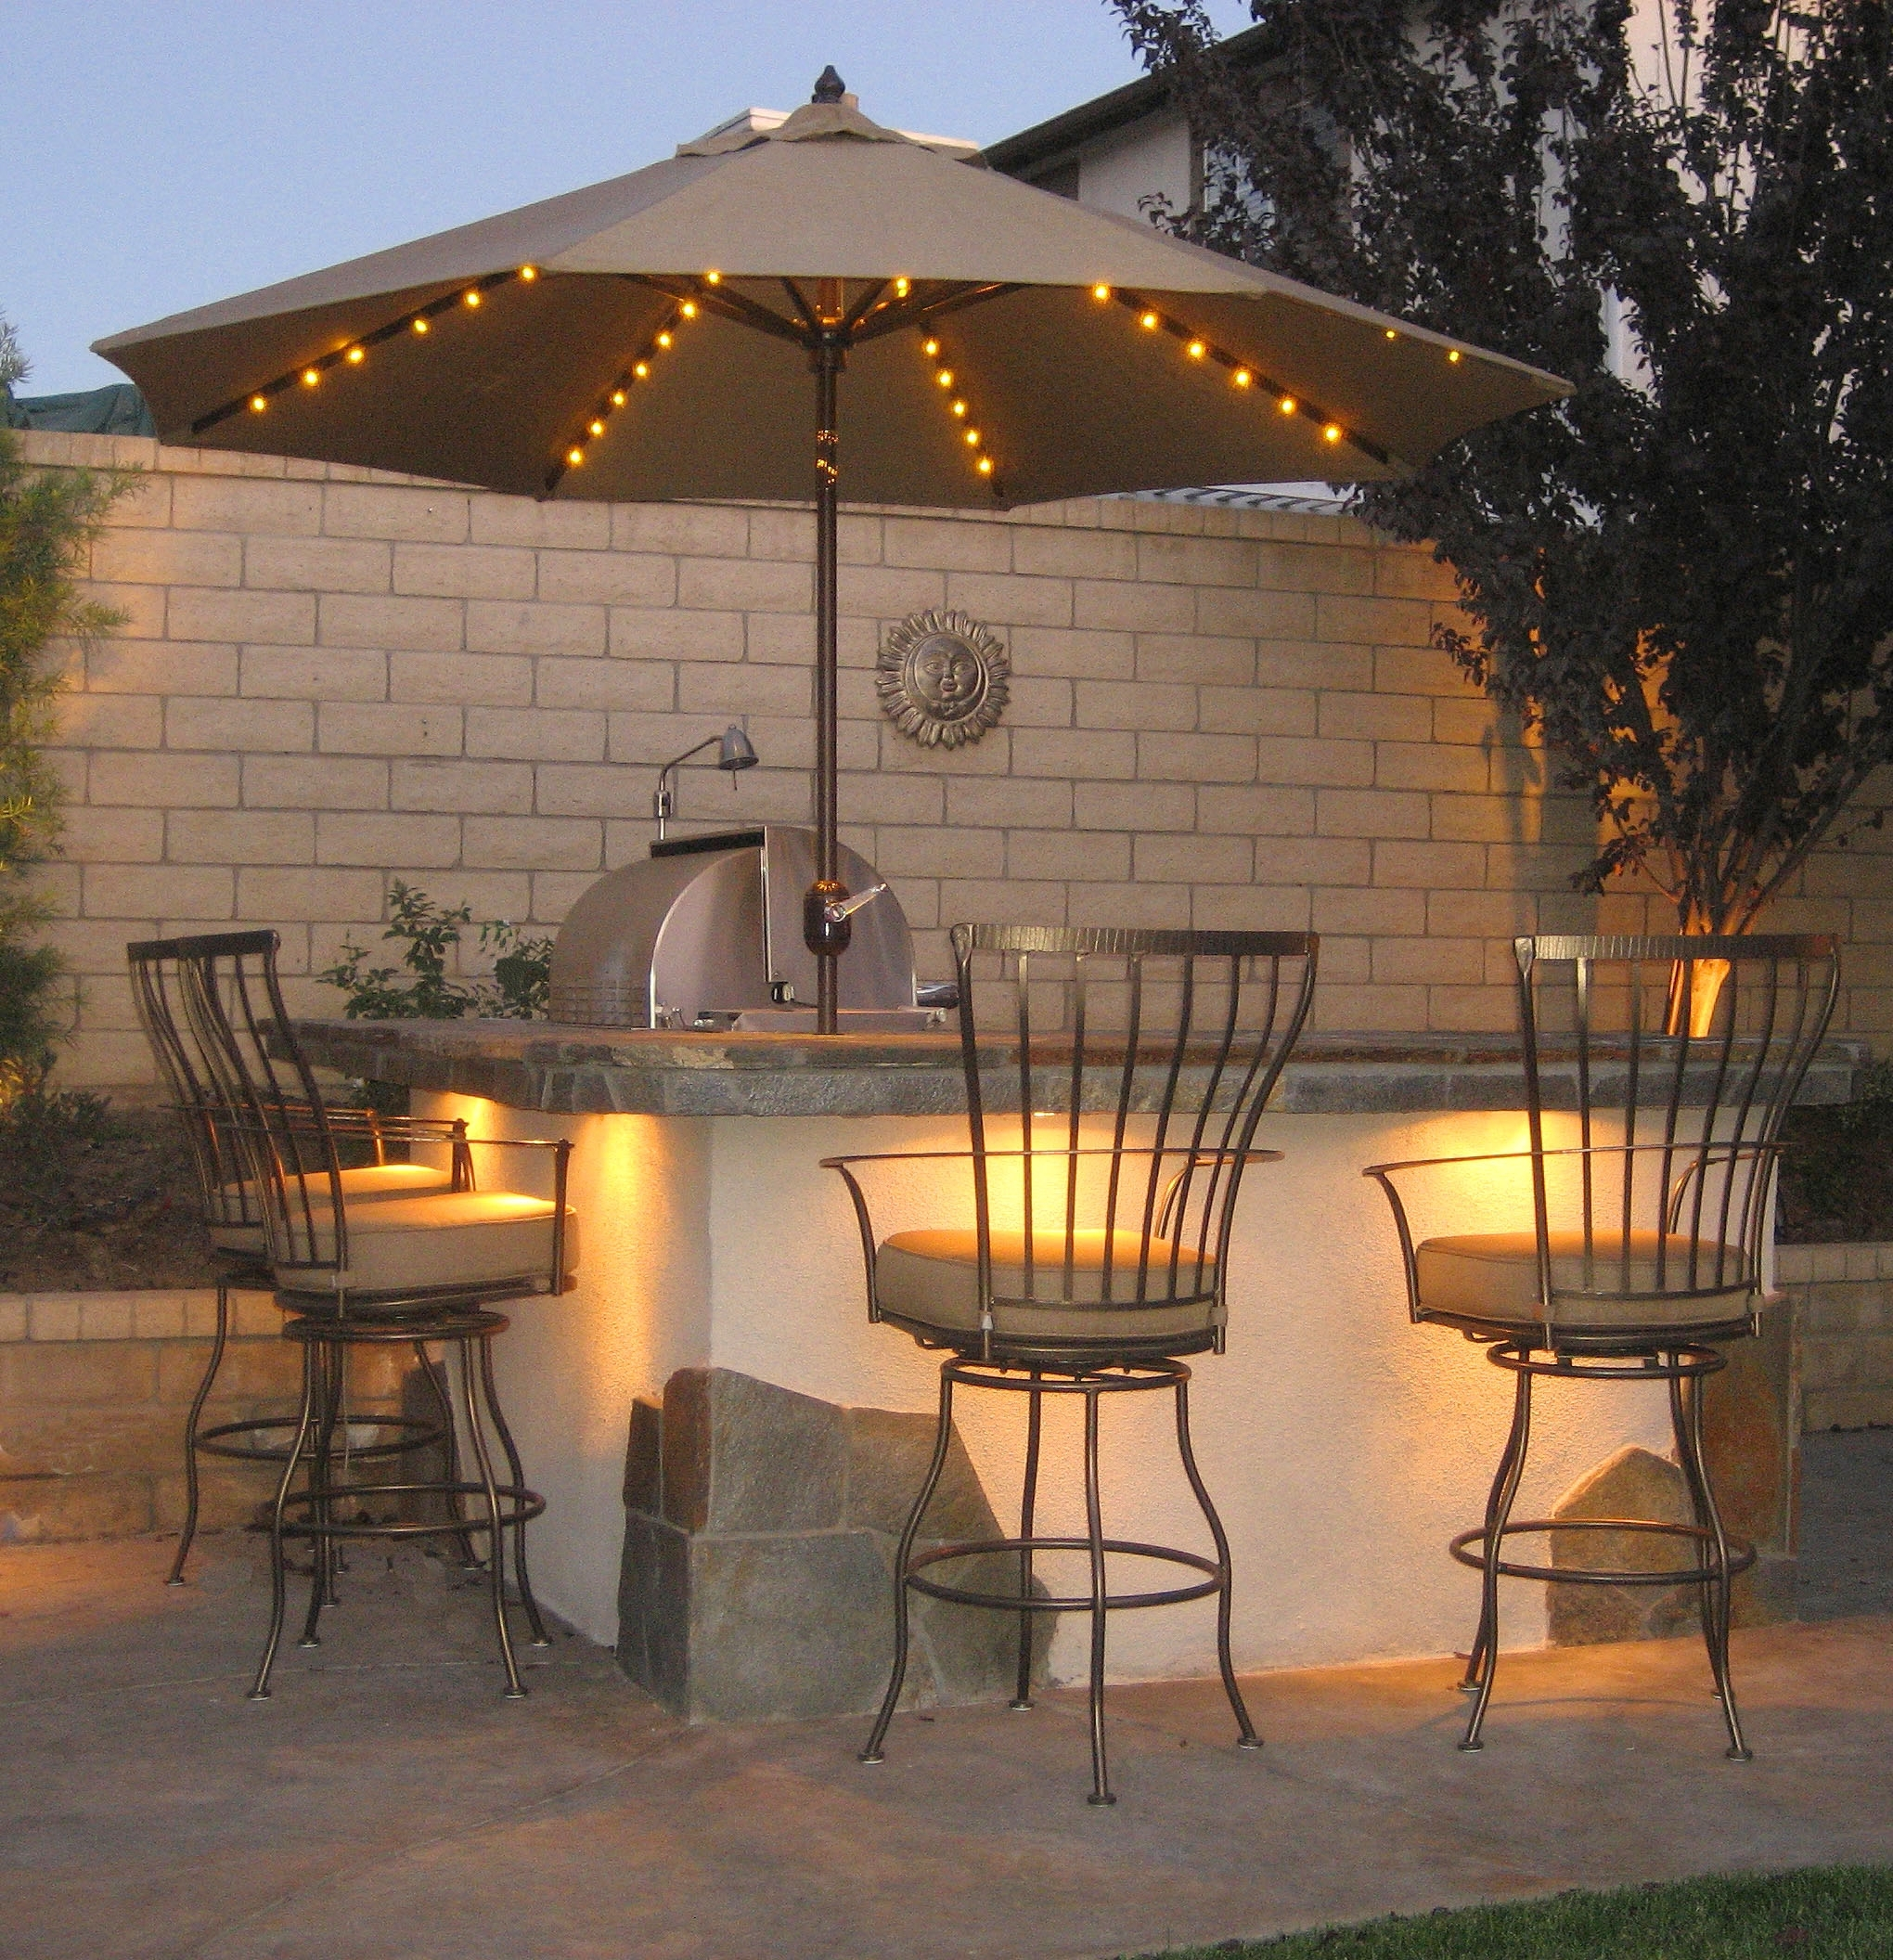 Fashionable Lighted Patio Umbrellas — Mistikcamping Home Design : Different Throughout Patio Umbrellas With Solar Led Lights (Gallery 8 of 20)